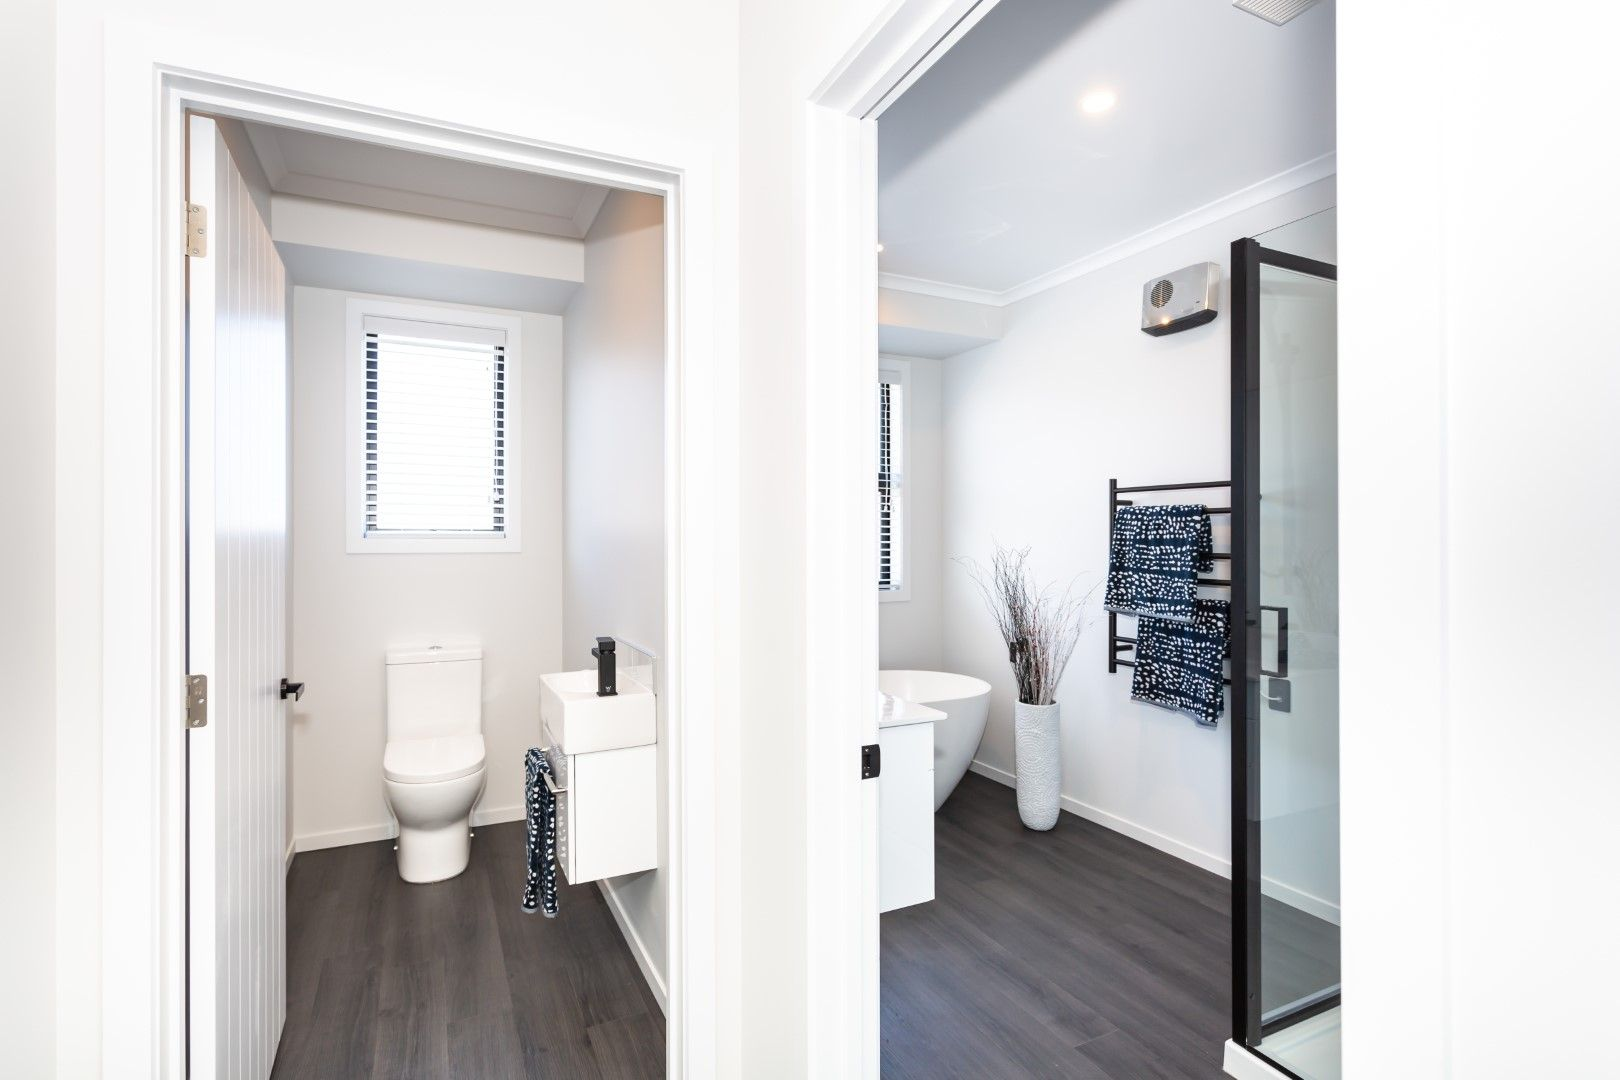 Vinyl Flooring In Your Bathroom And Toilet Remains A Stylish Low Maintenance Cost Effective Option Lino Vinylflooring